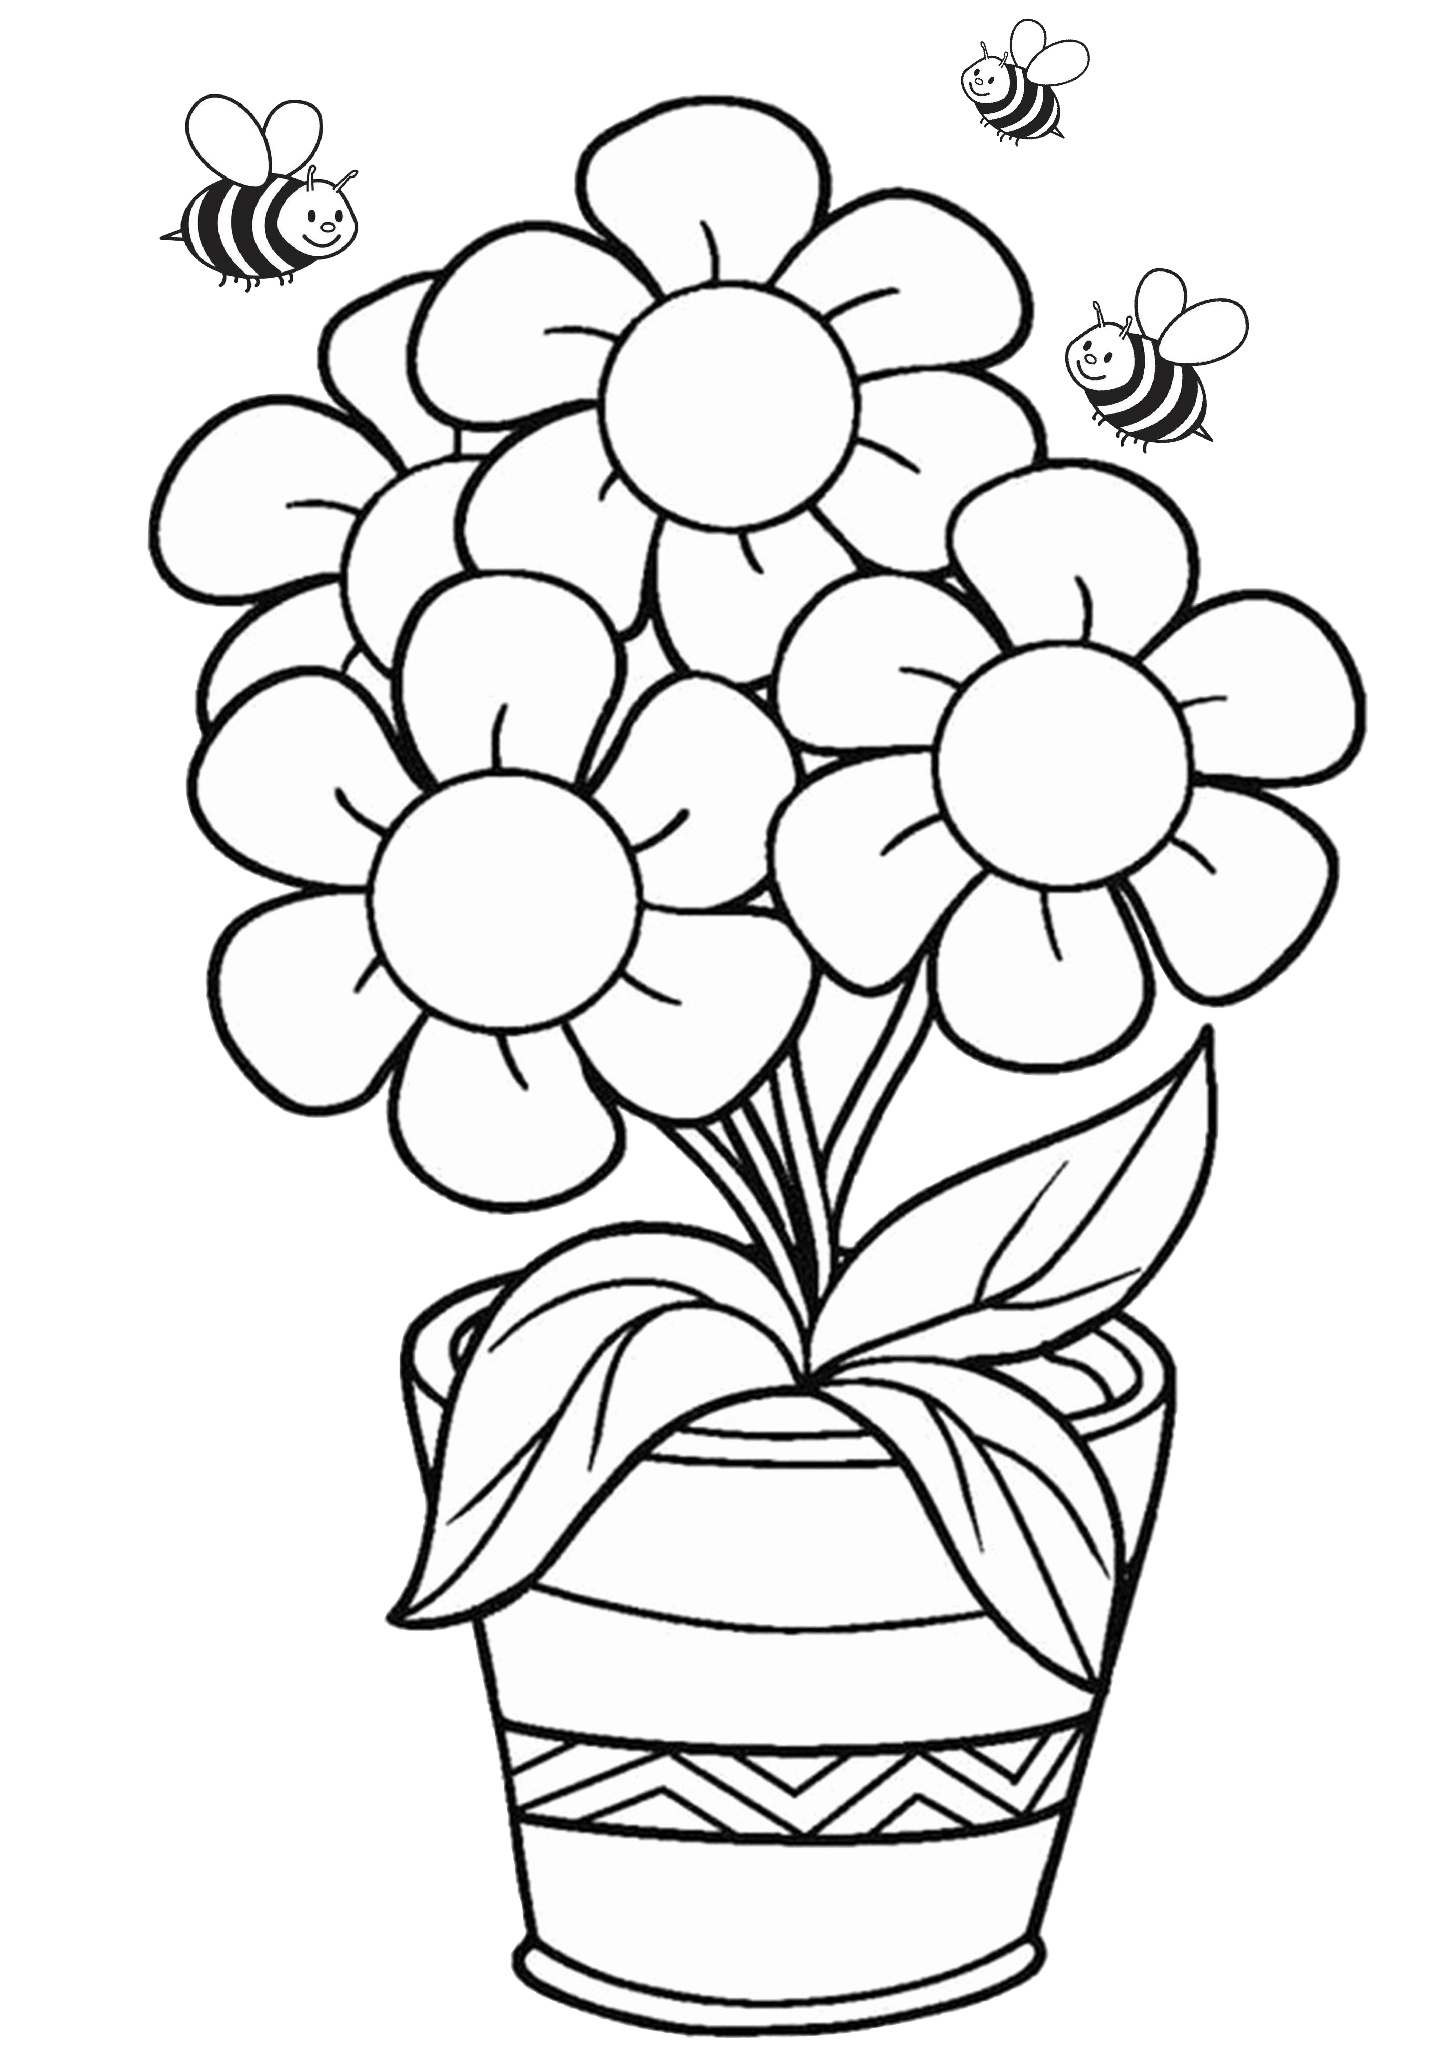 flower coloring book pages free flower coloring pages for kids printable pdf print coloring book flower pages